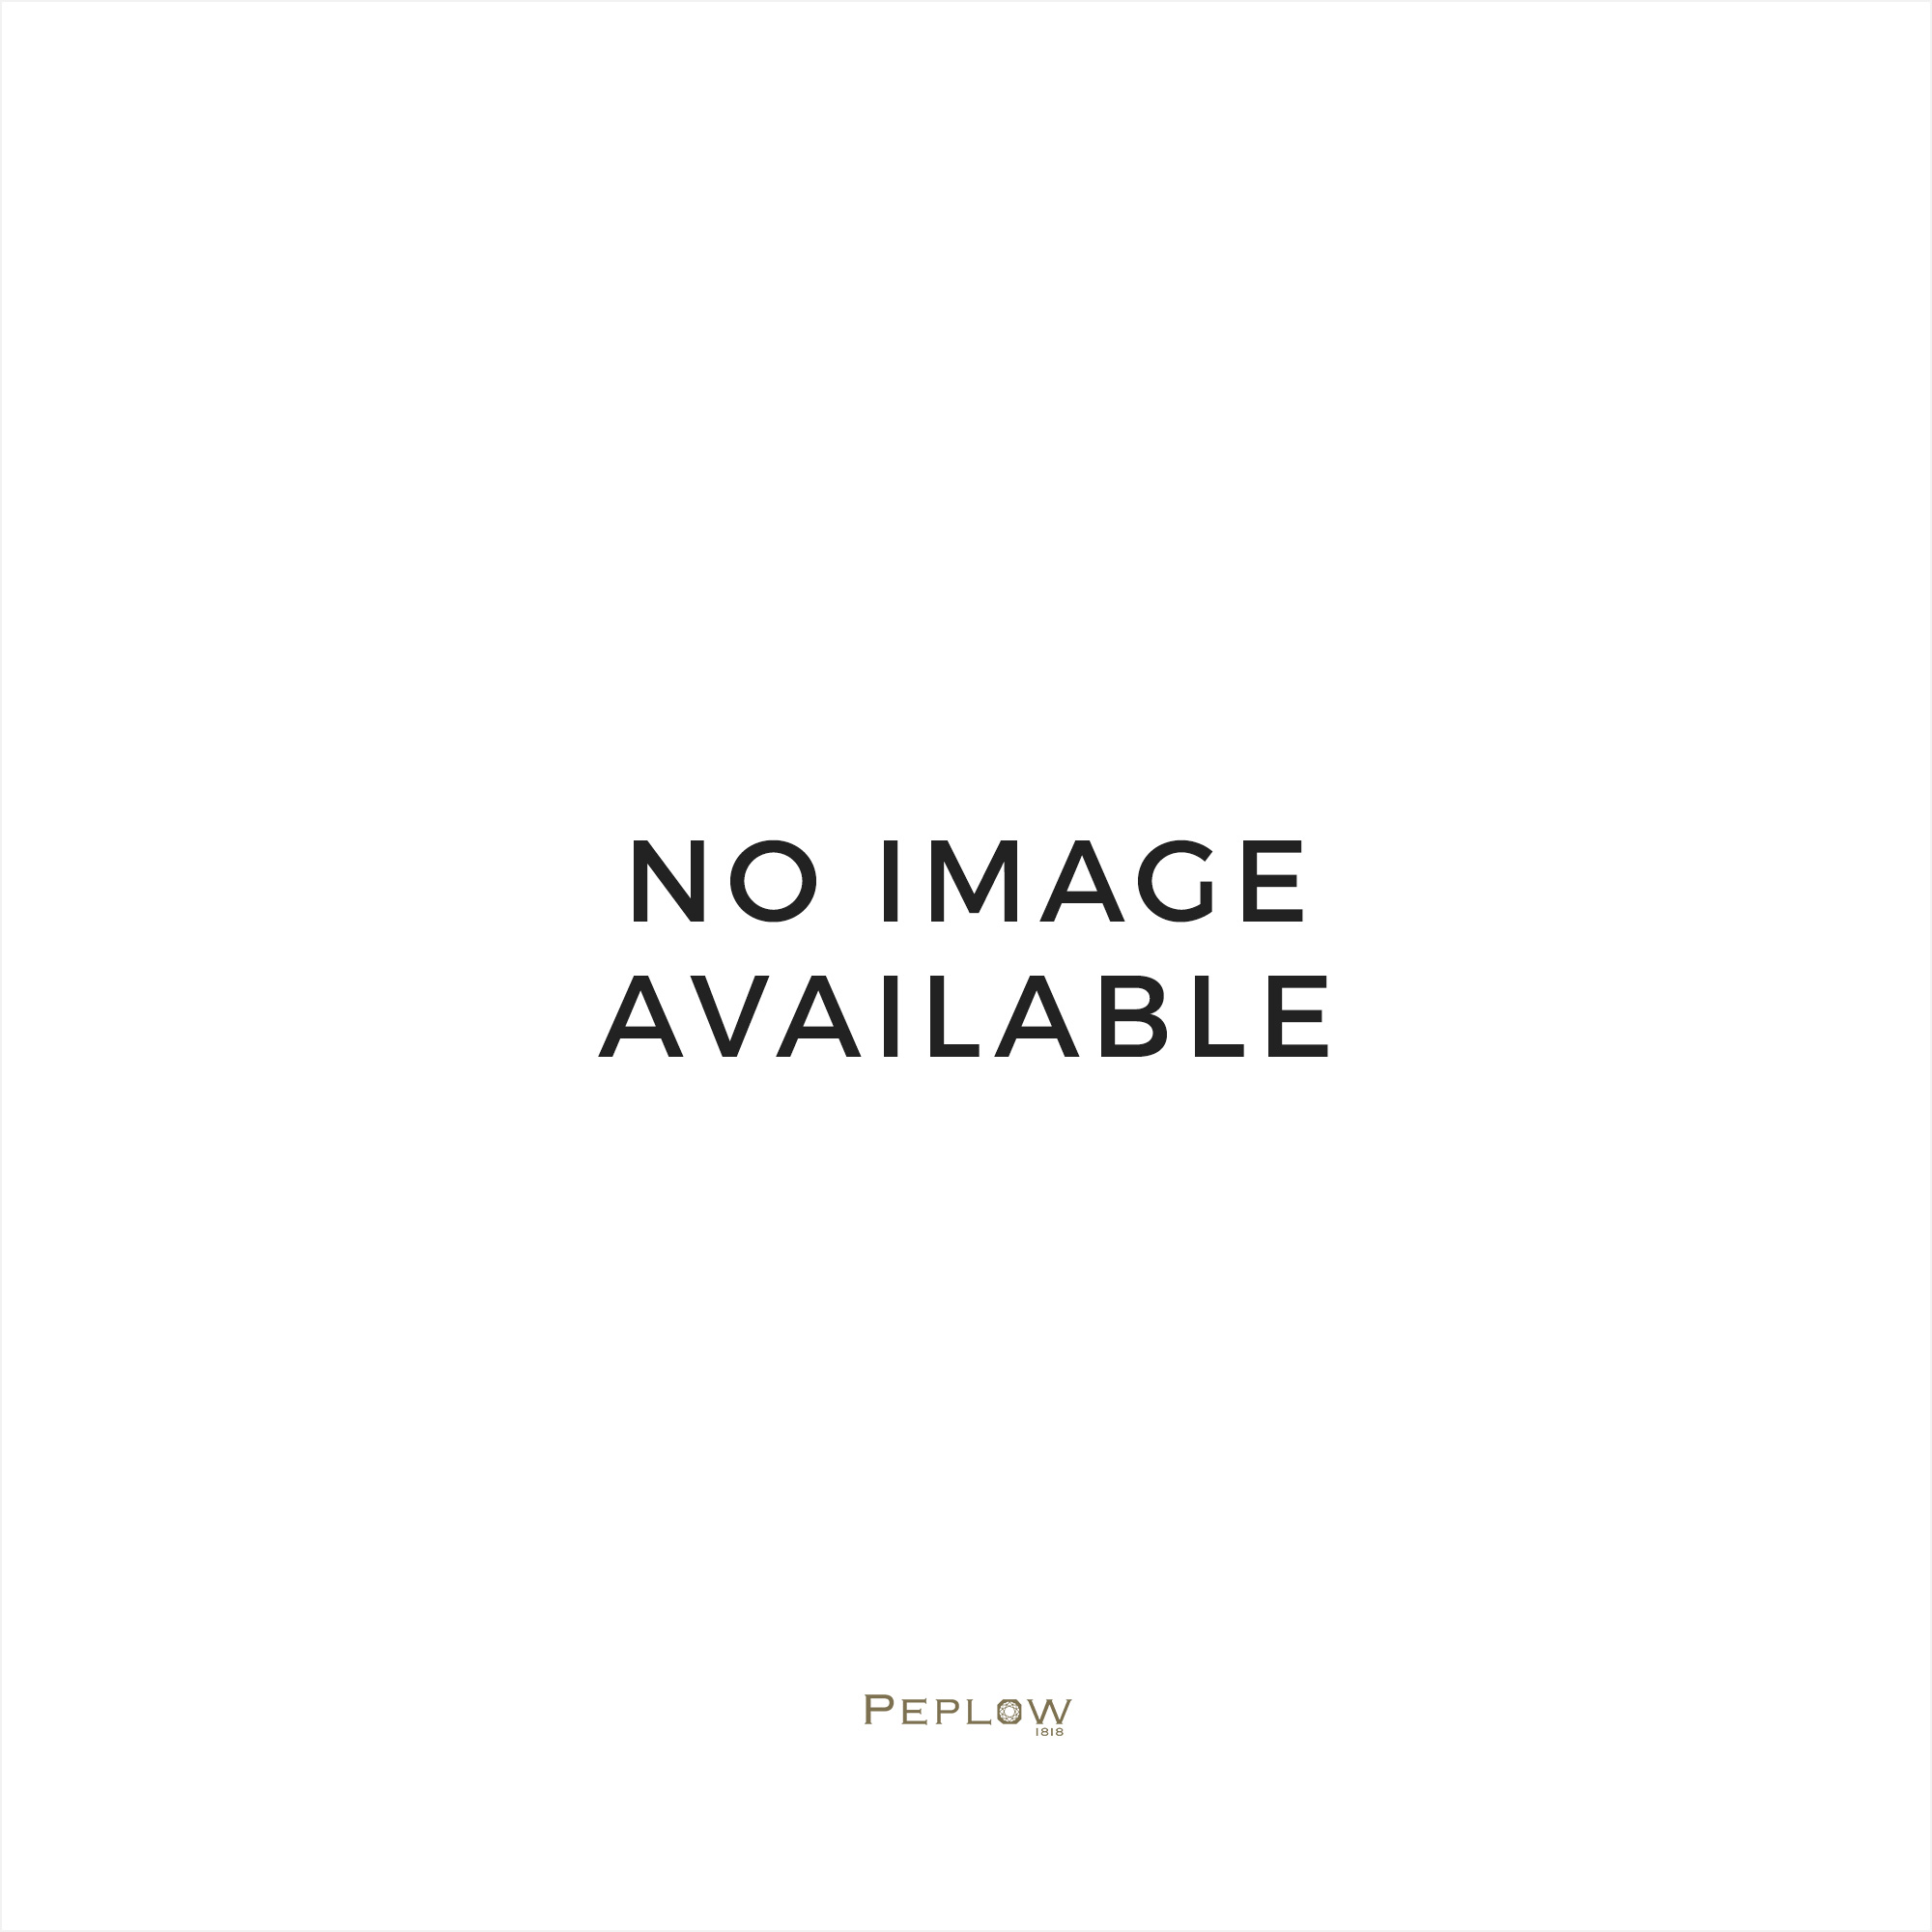 Seiko Presage stainless steel automatic watch SPB037J1